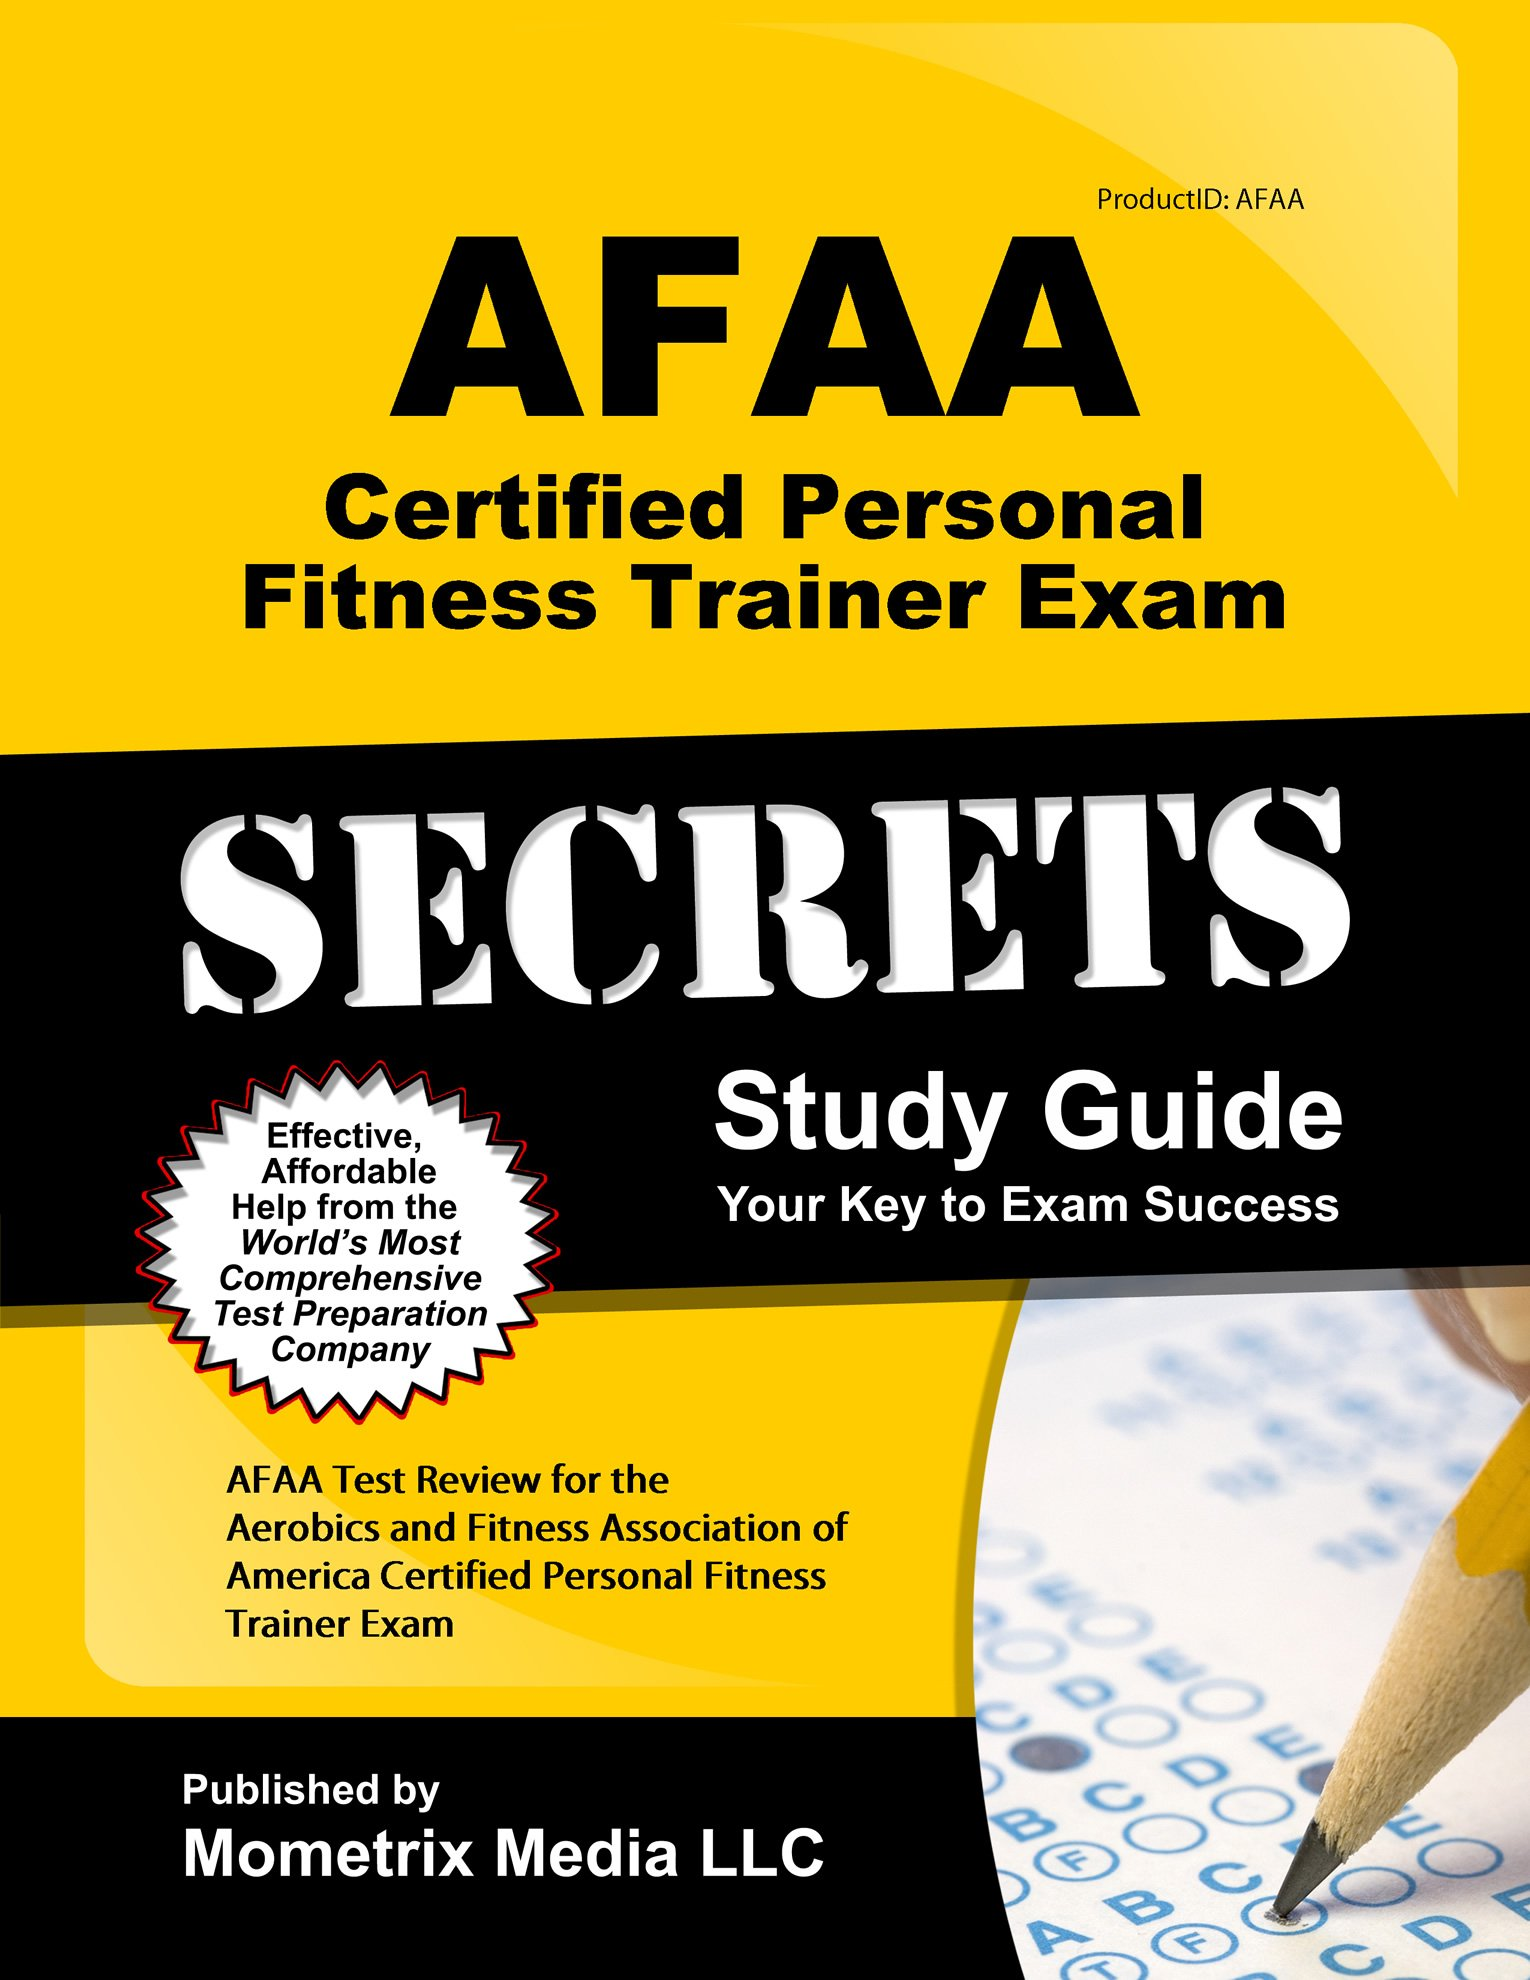 What is the AFAA test?